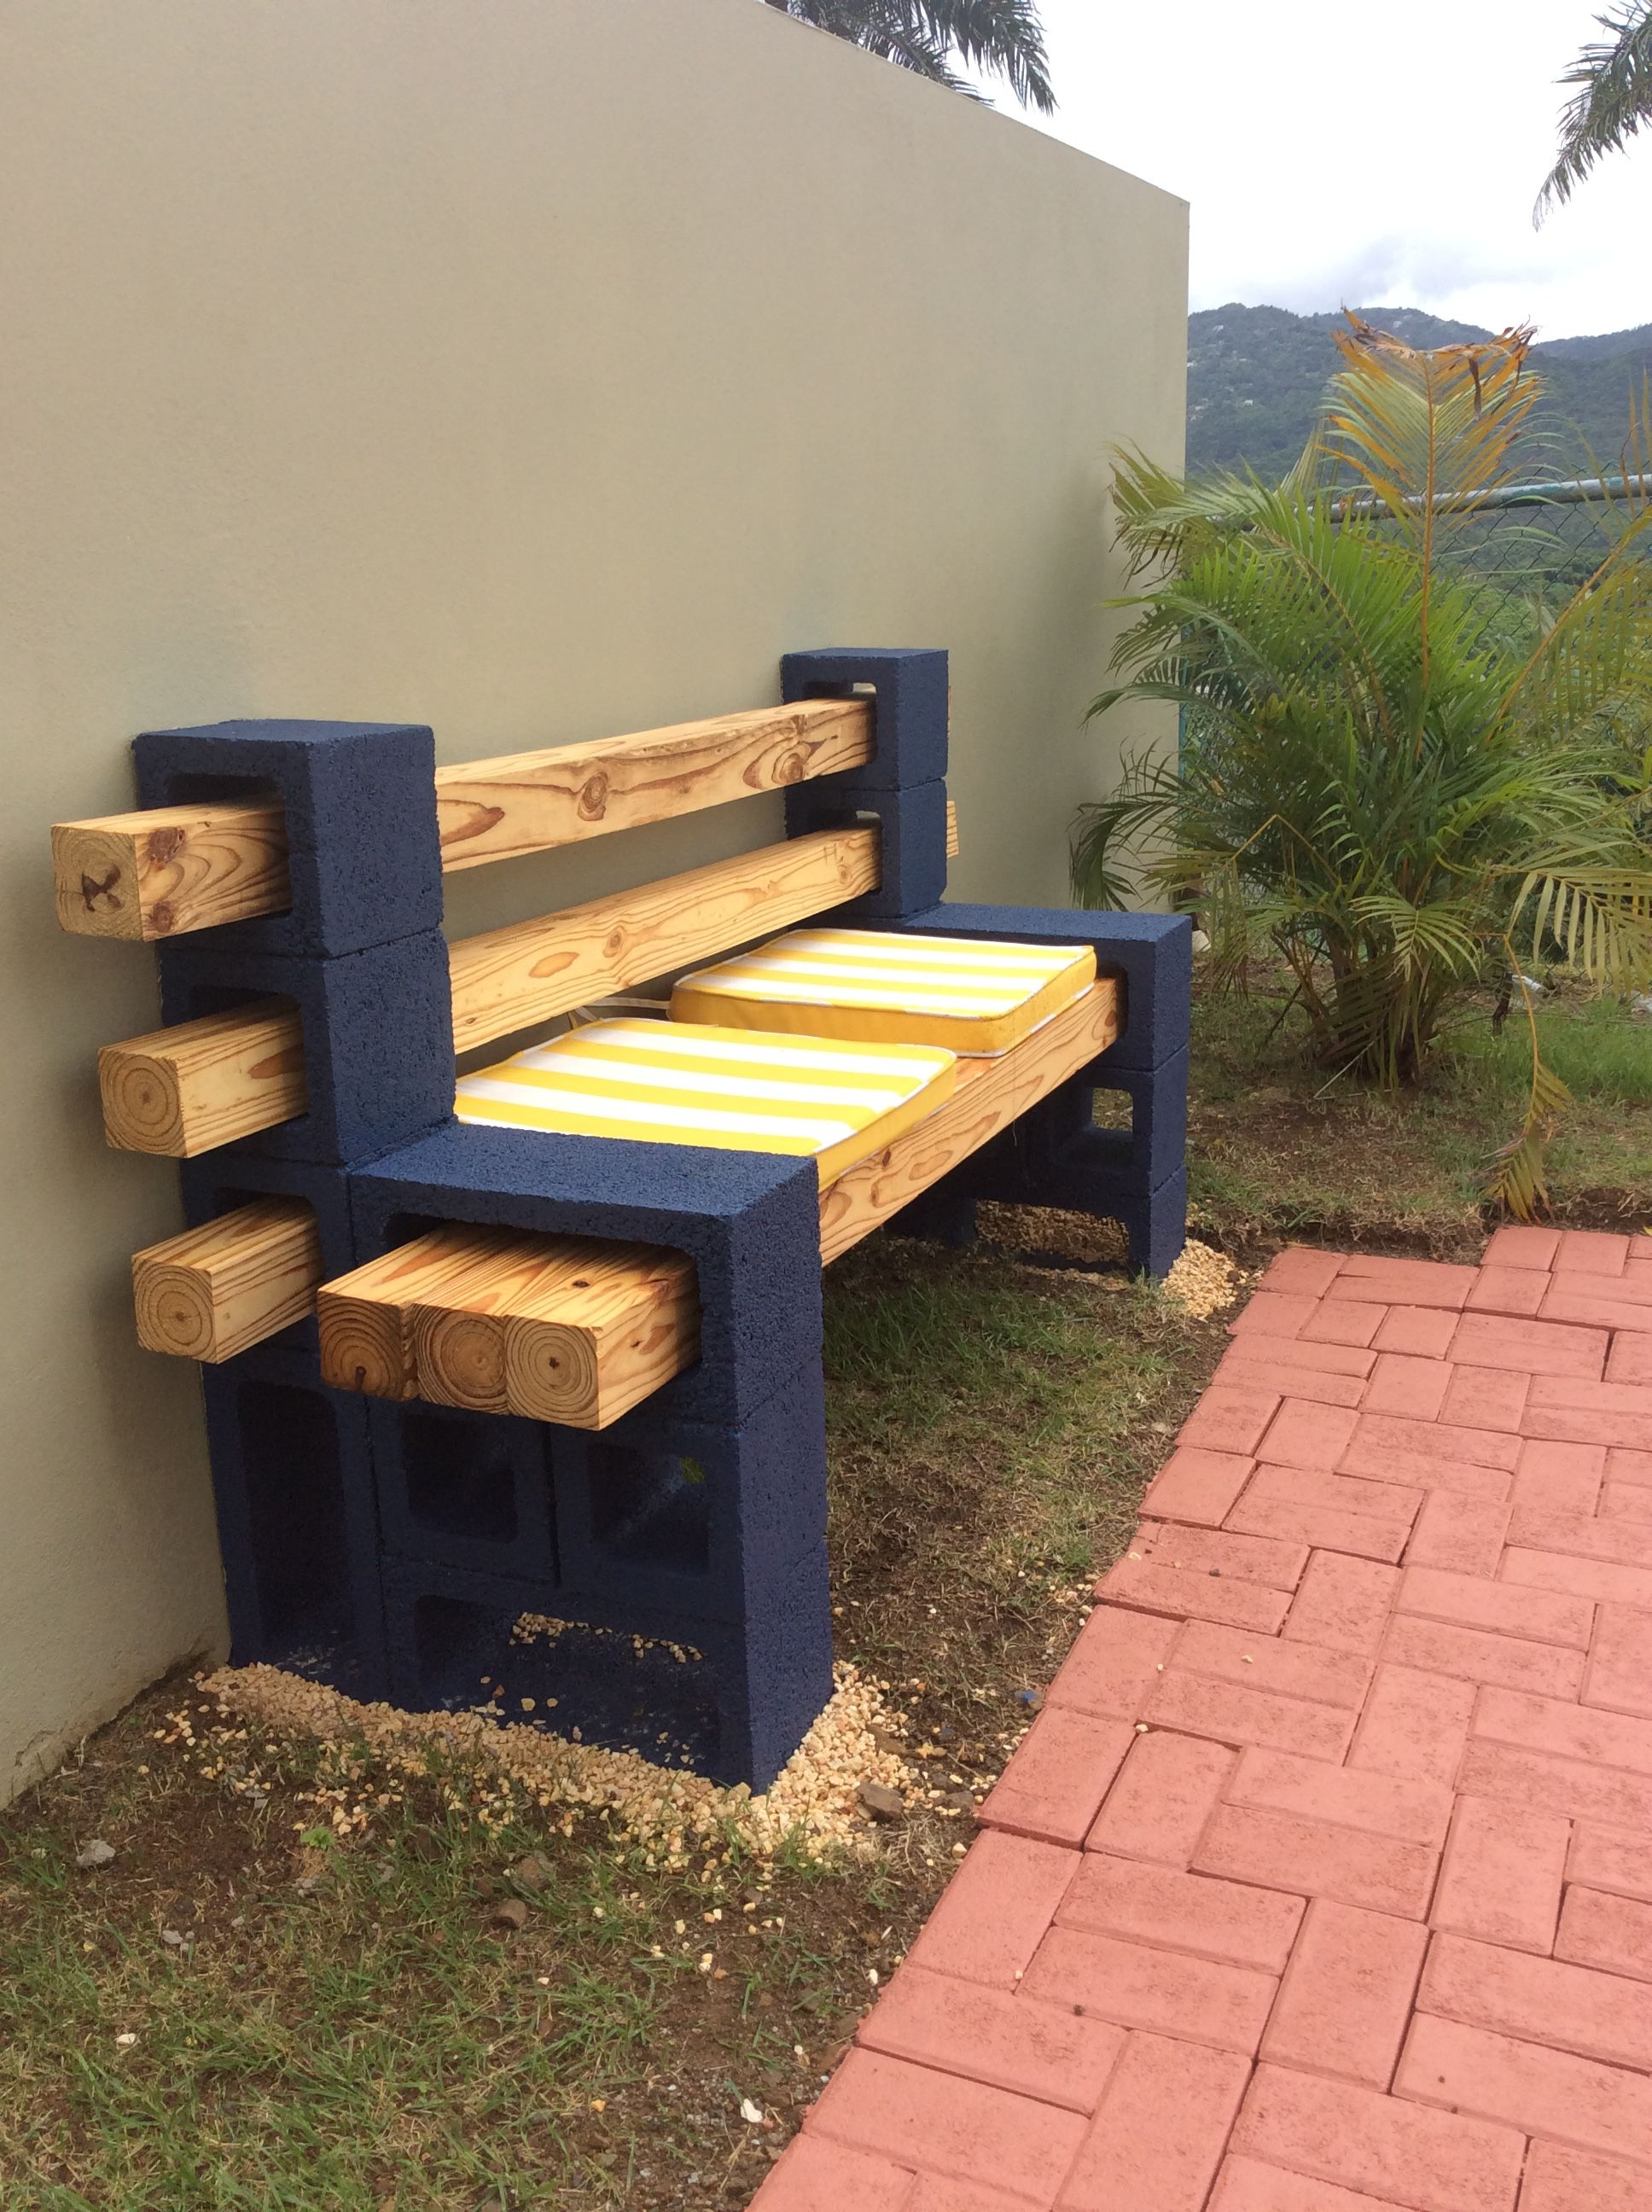 Concrete Block And Wood Bench. Diy Arts & Crafts In